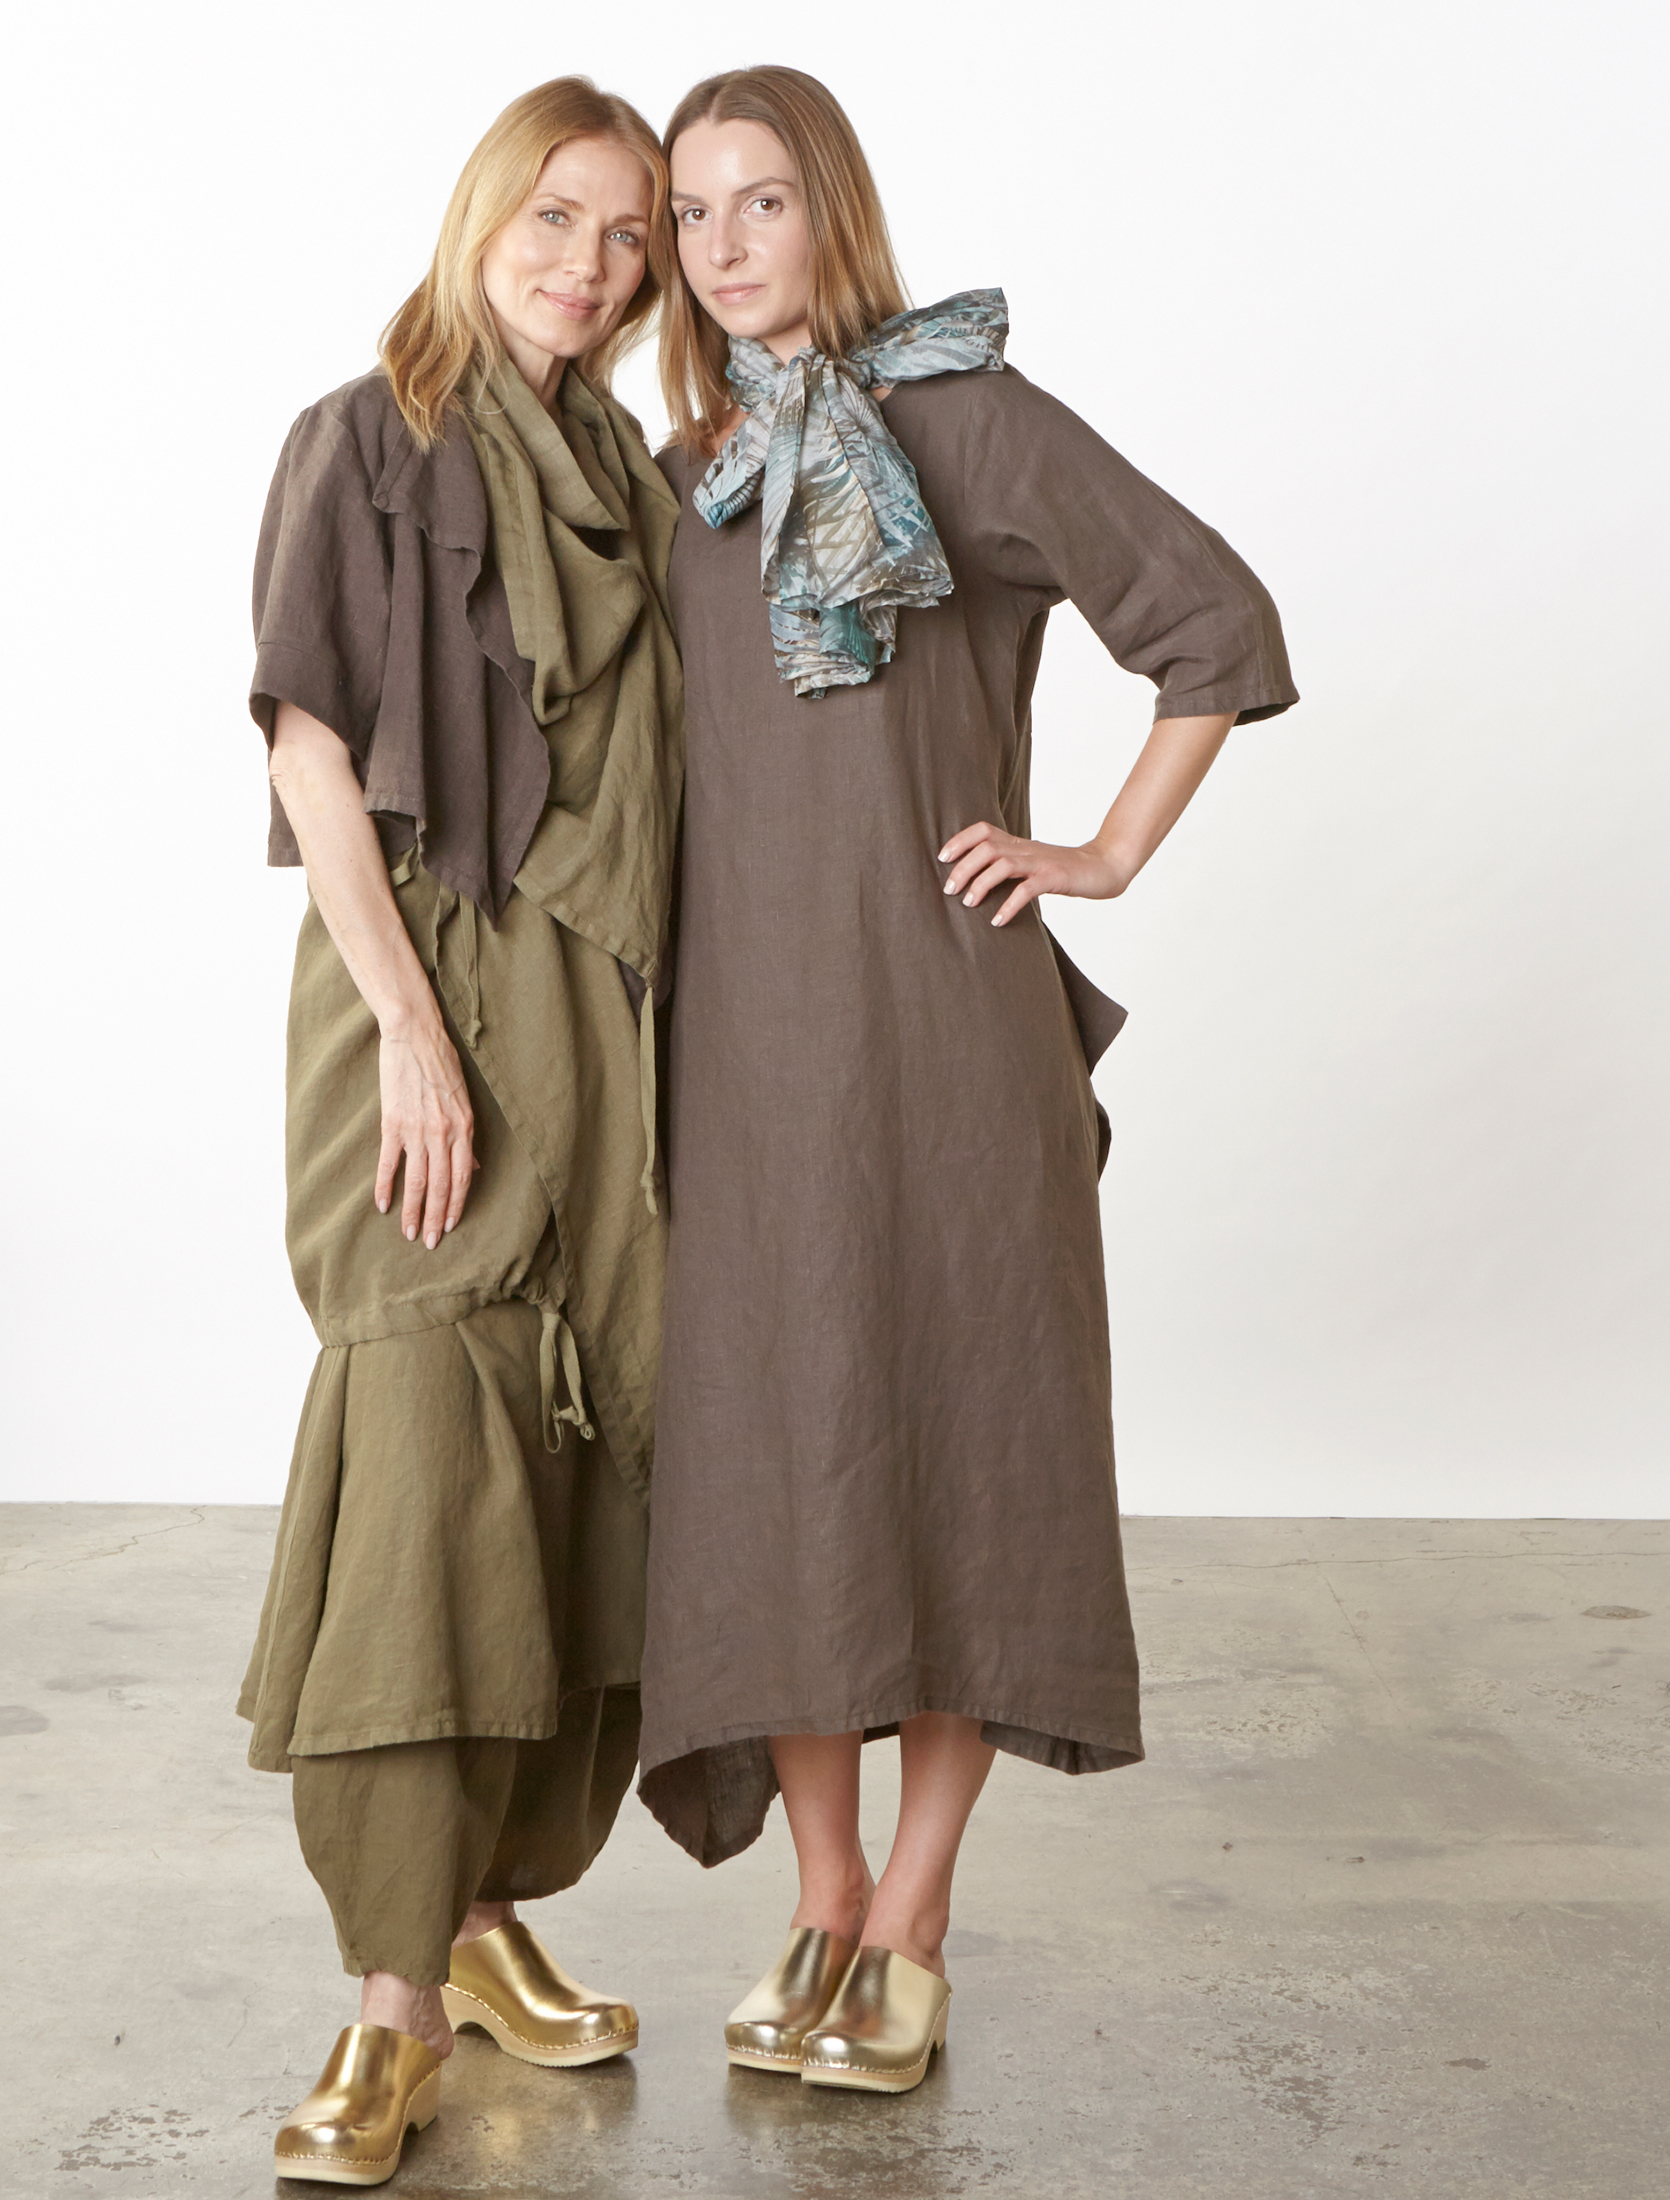 Malin Jacket in Kvass Heavy Linen, Eve Vest, Henrietta Dress, Oliver Pant in Grove, Pilkington Dress in Kvass Light Linen